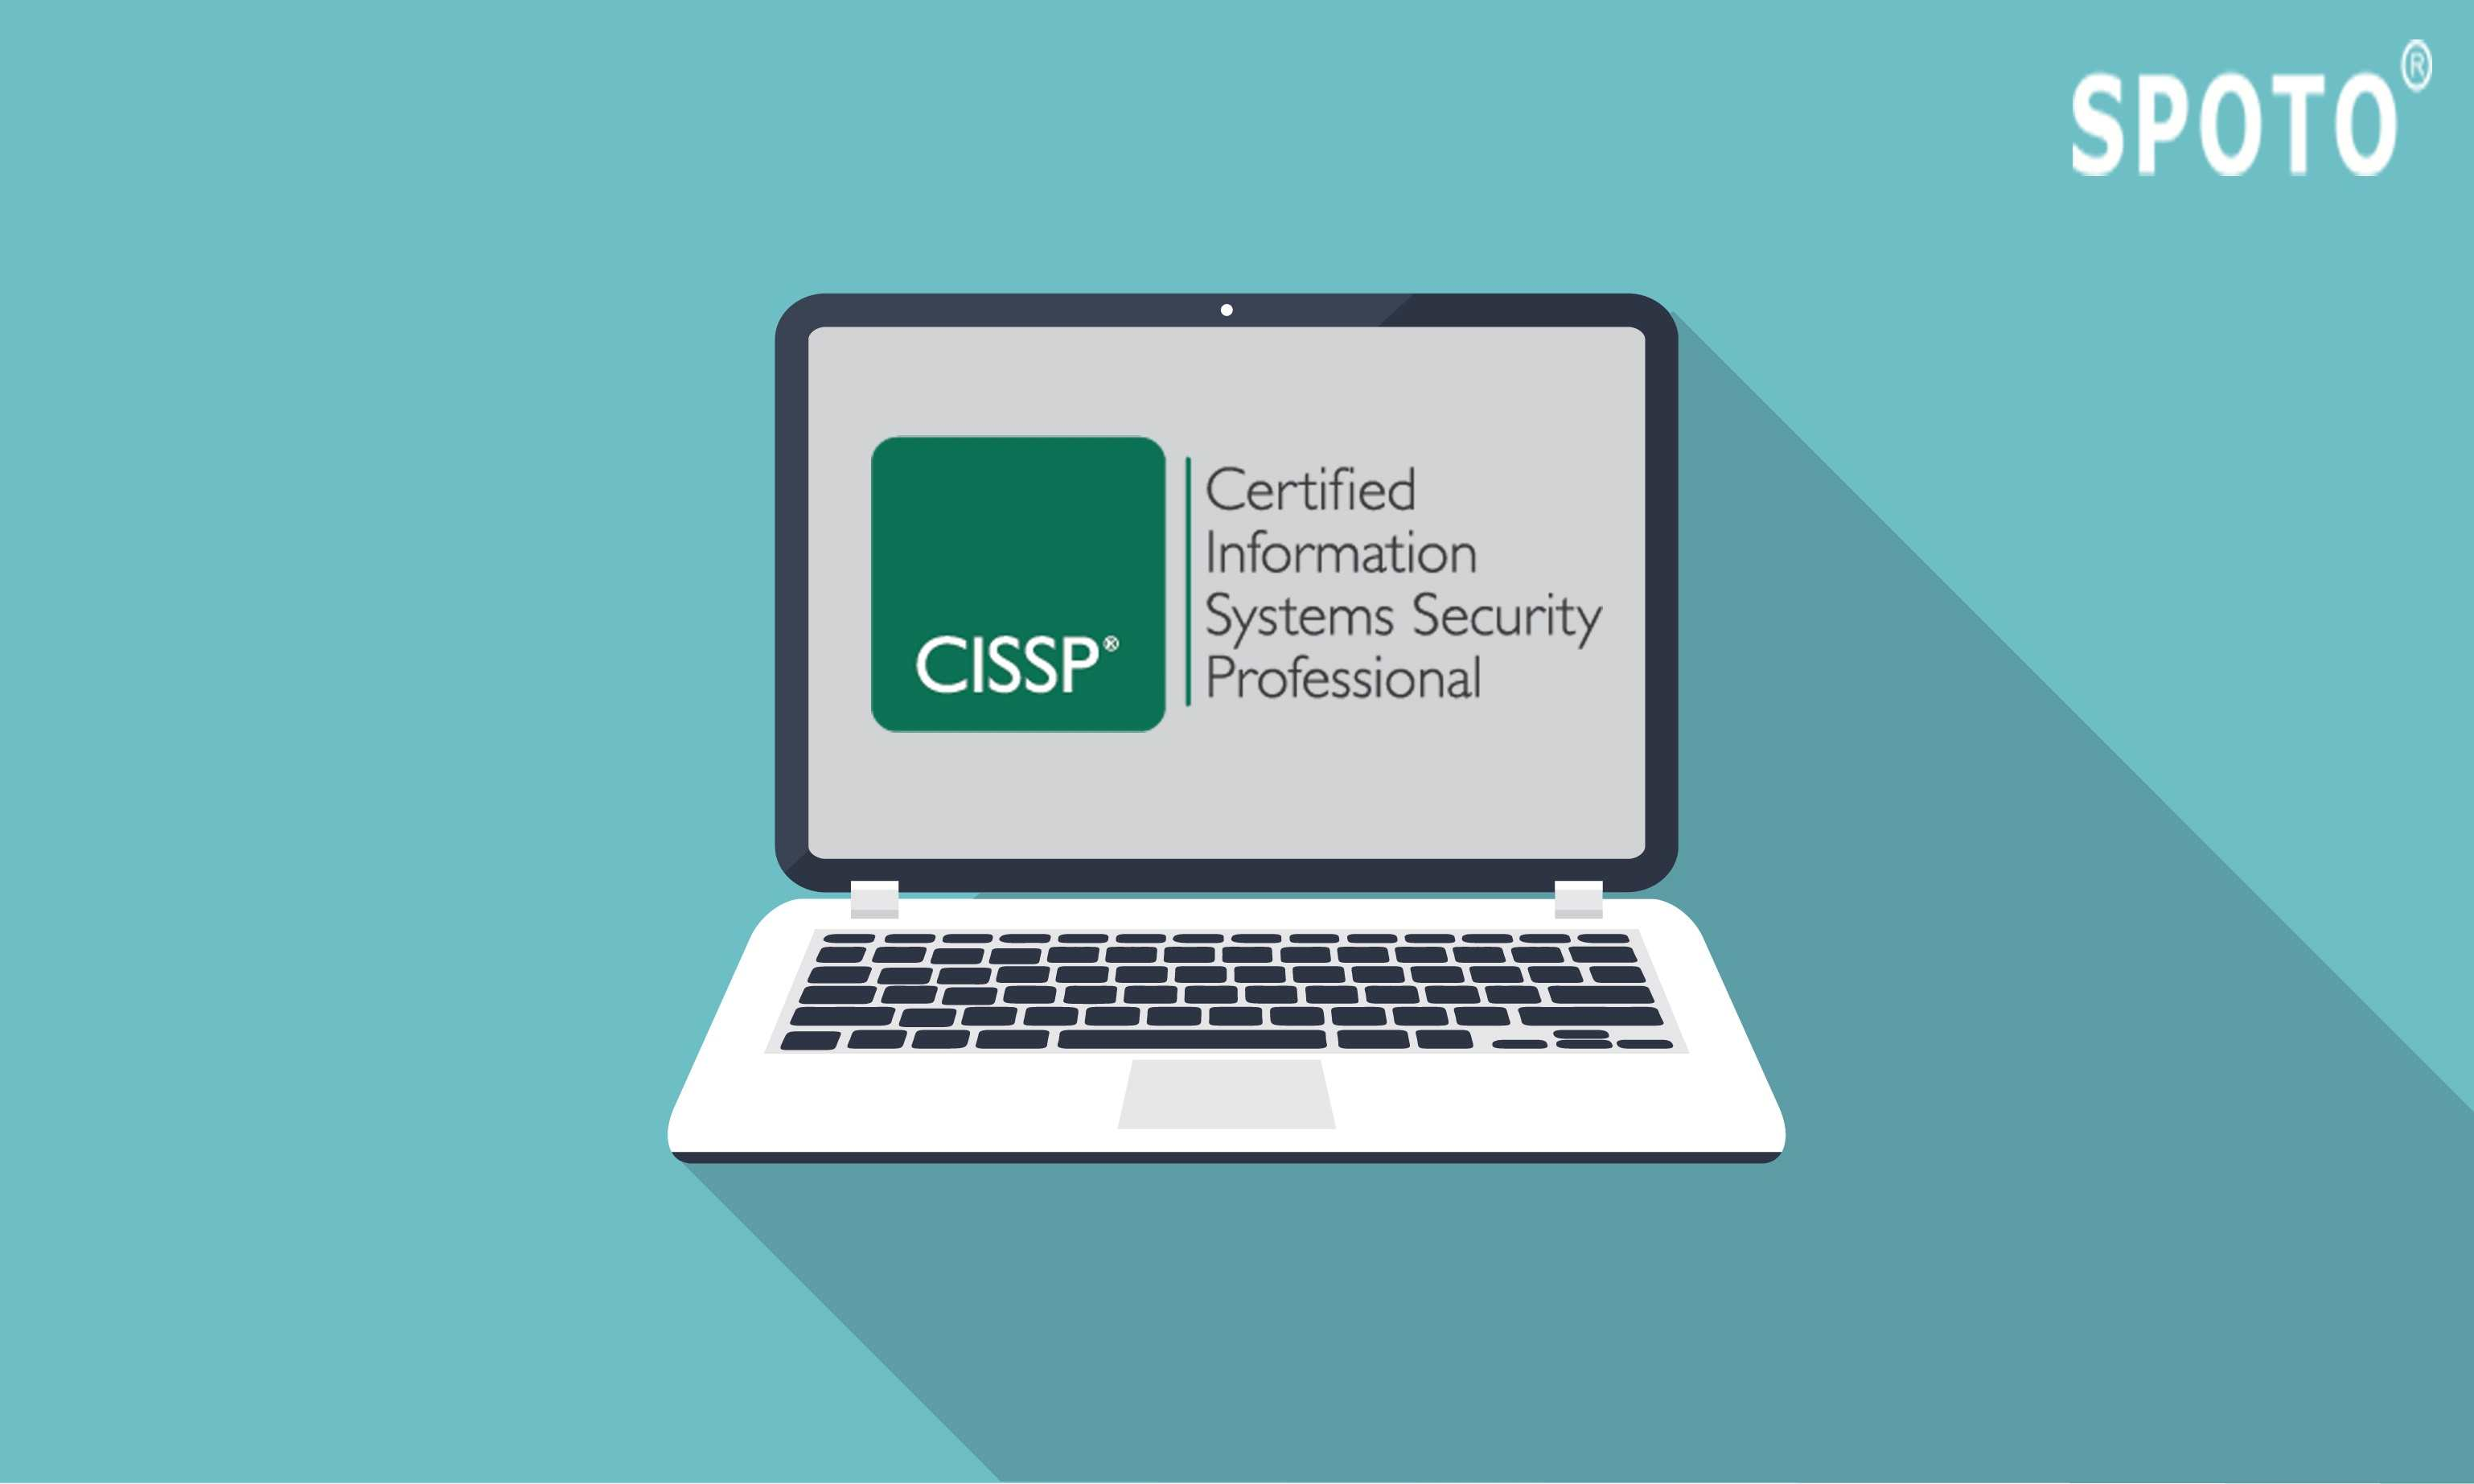 What Are the Requirements to Become CISSP Certified?